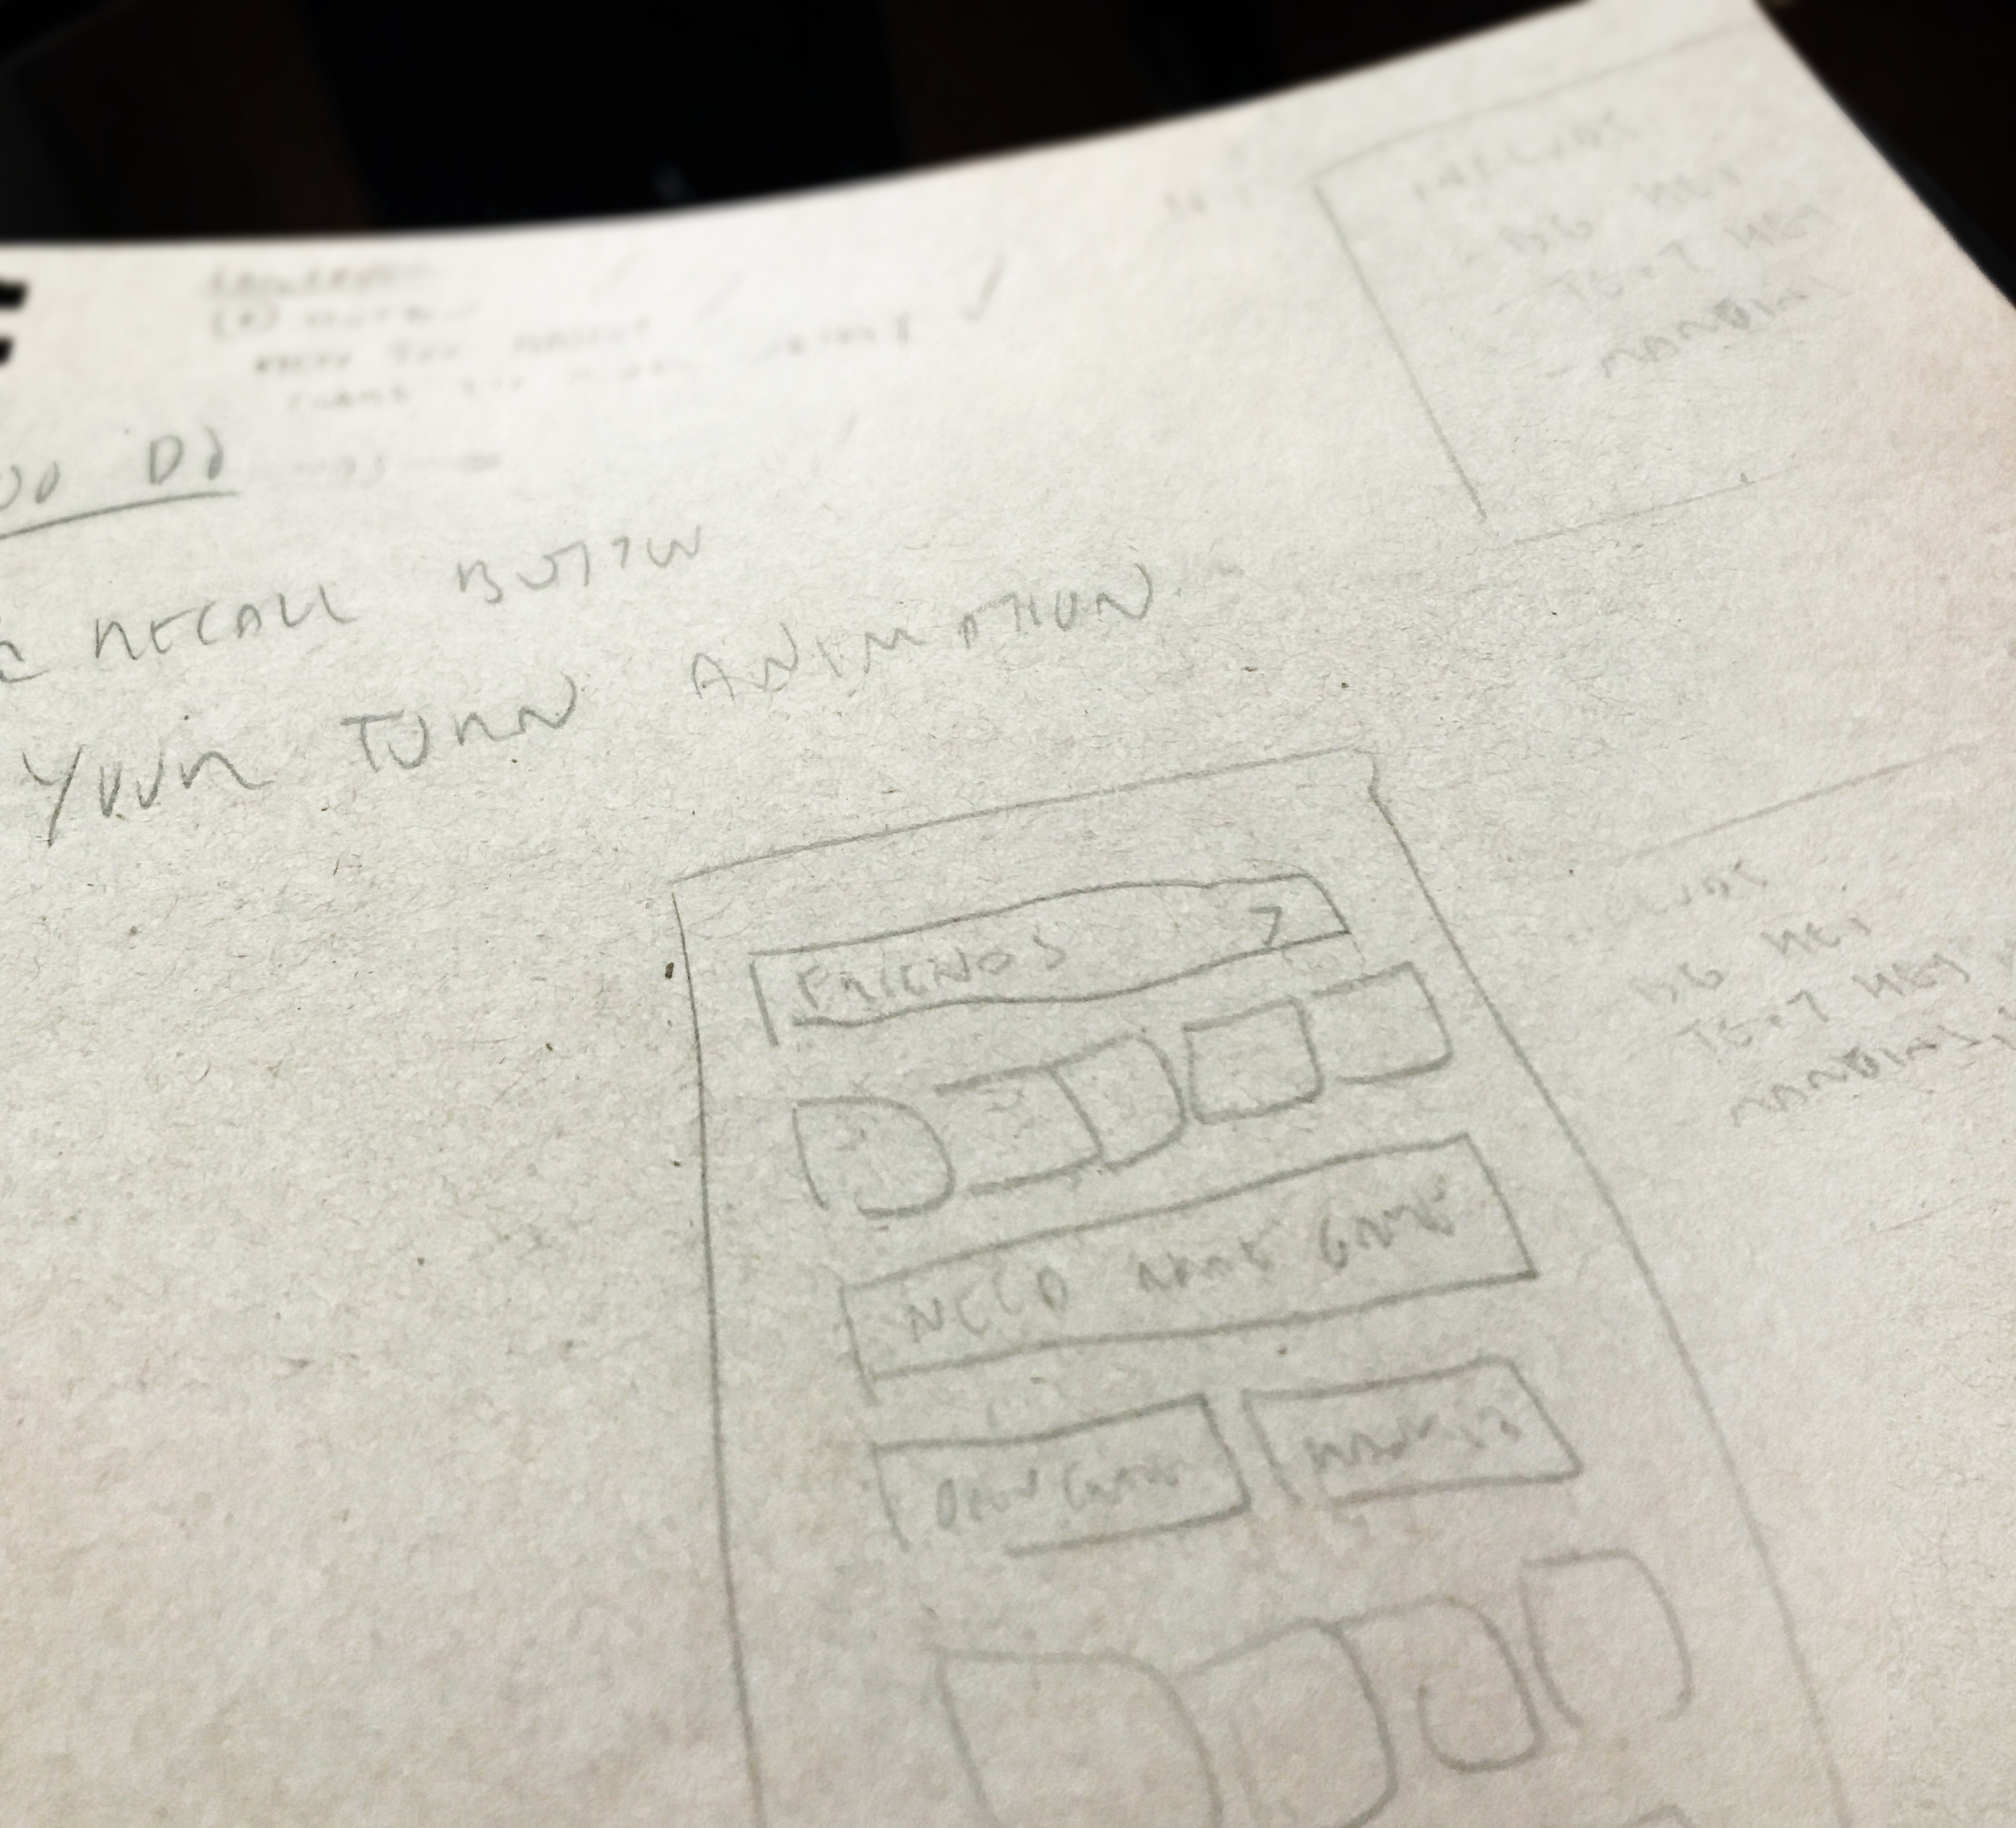 An early sketch of the create game / friends screen. You can see an evolution of this sketch in the wireframes below.